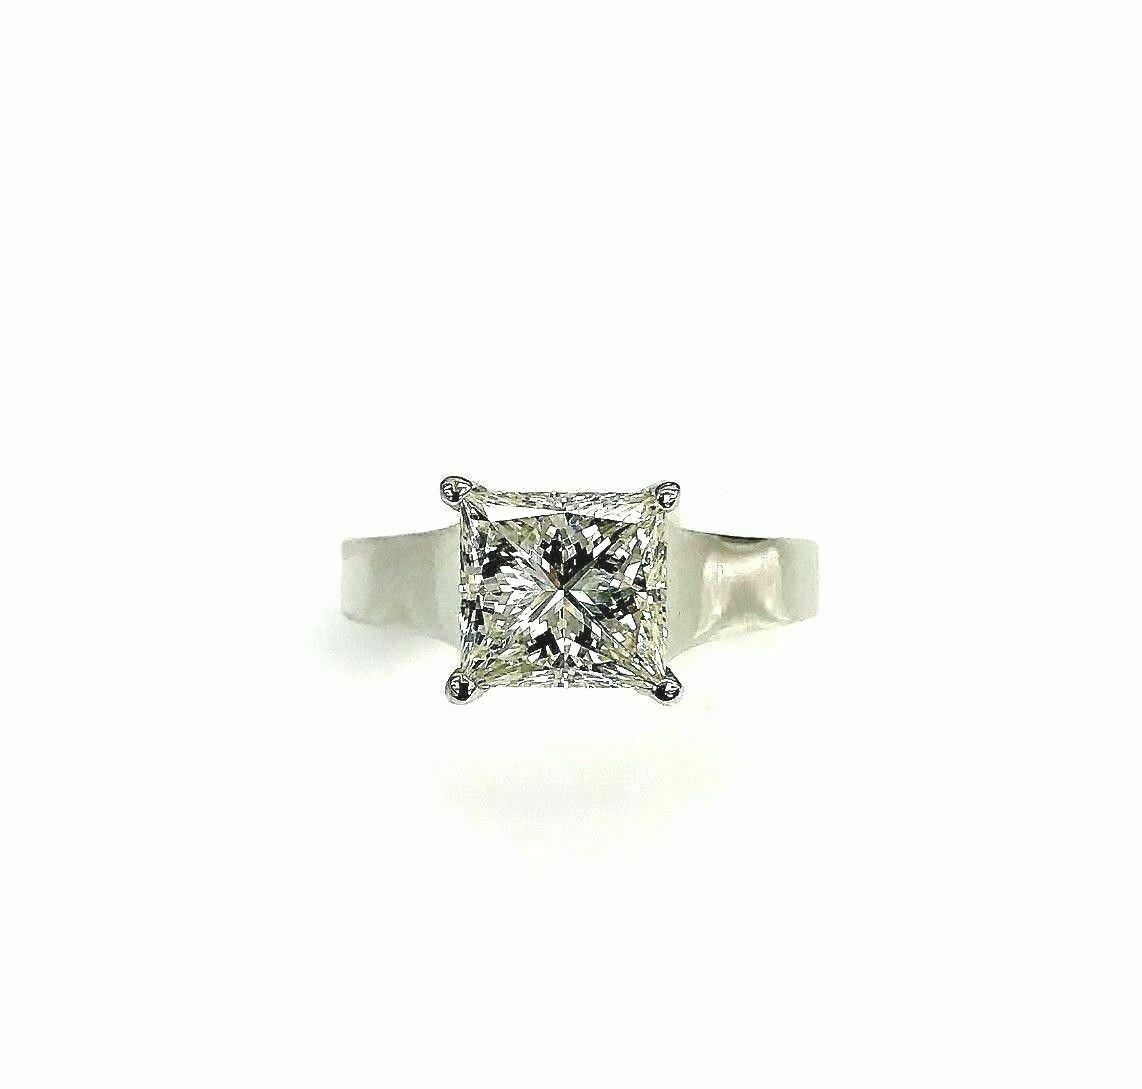 2.13 Carats Princess Cut Diamond Solitaire Wedding Ring EGLUSA $28,400 Appraisal